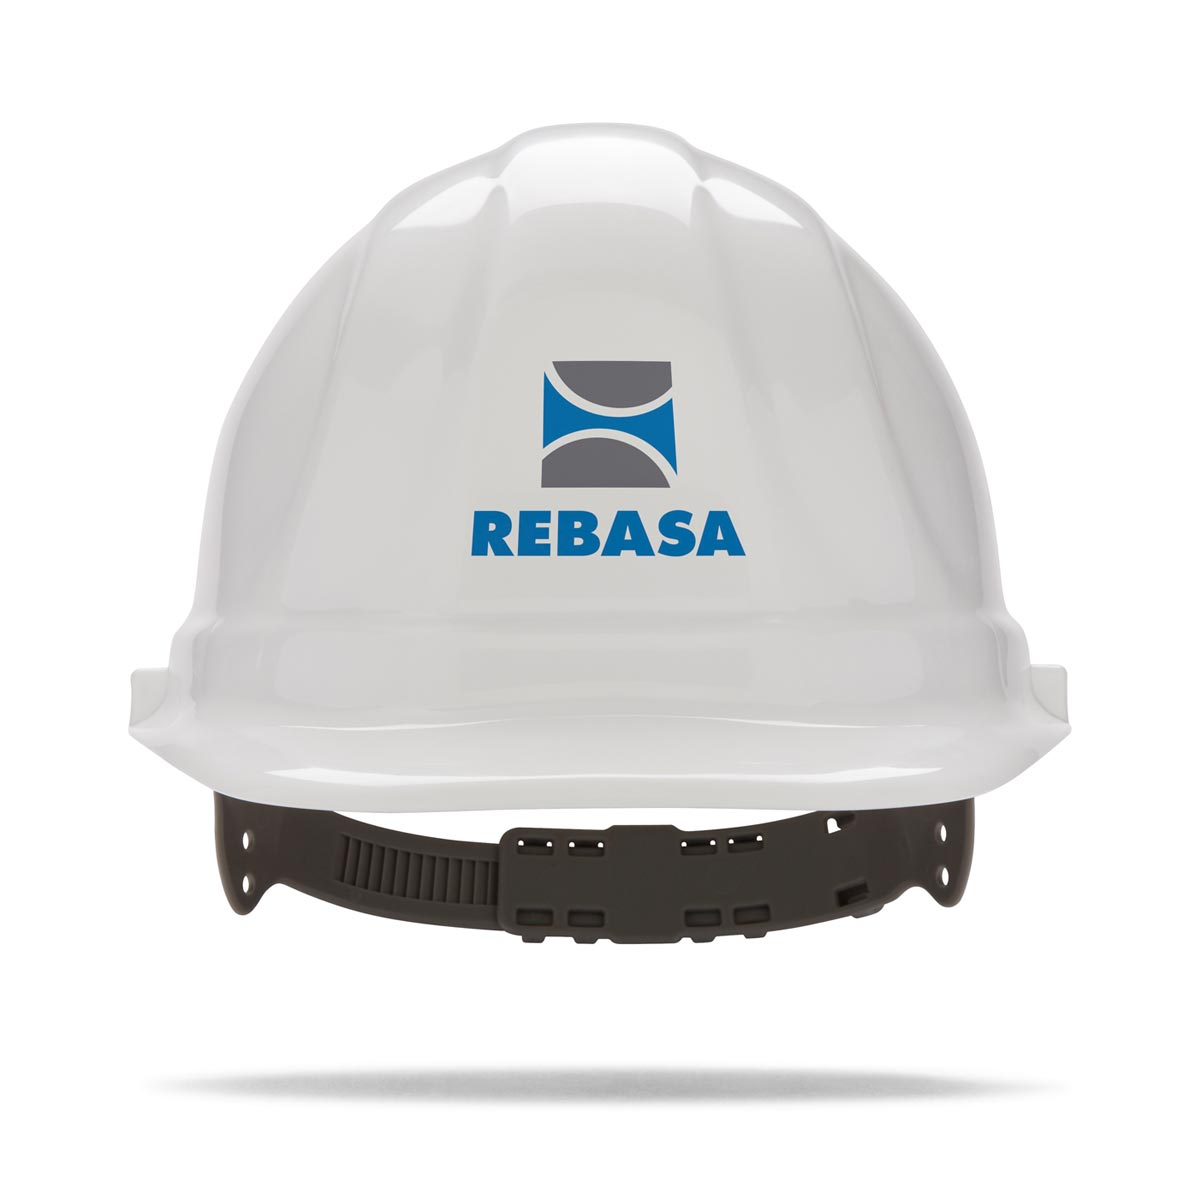 Rebasa hard hat